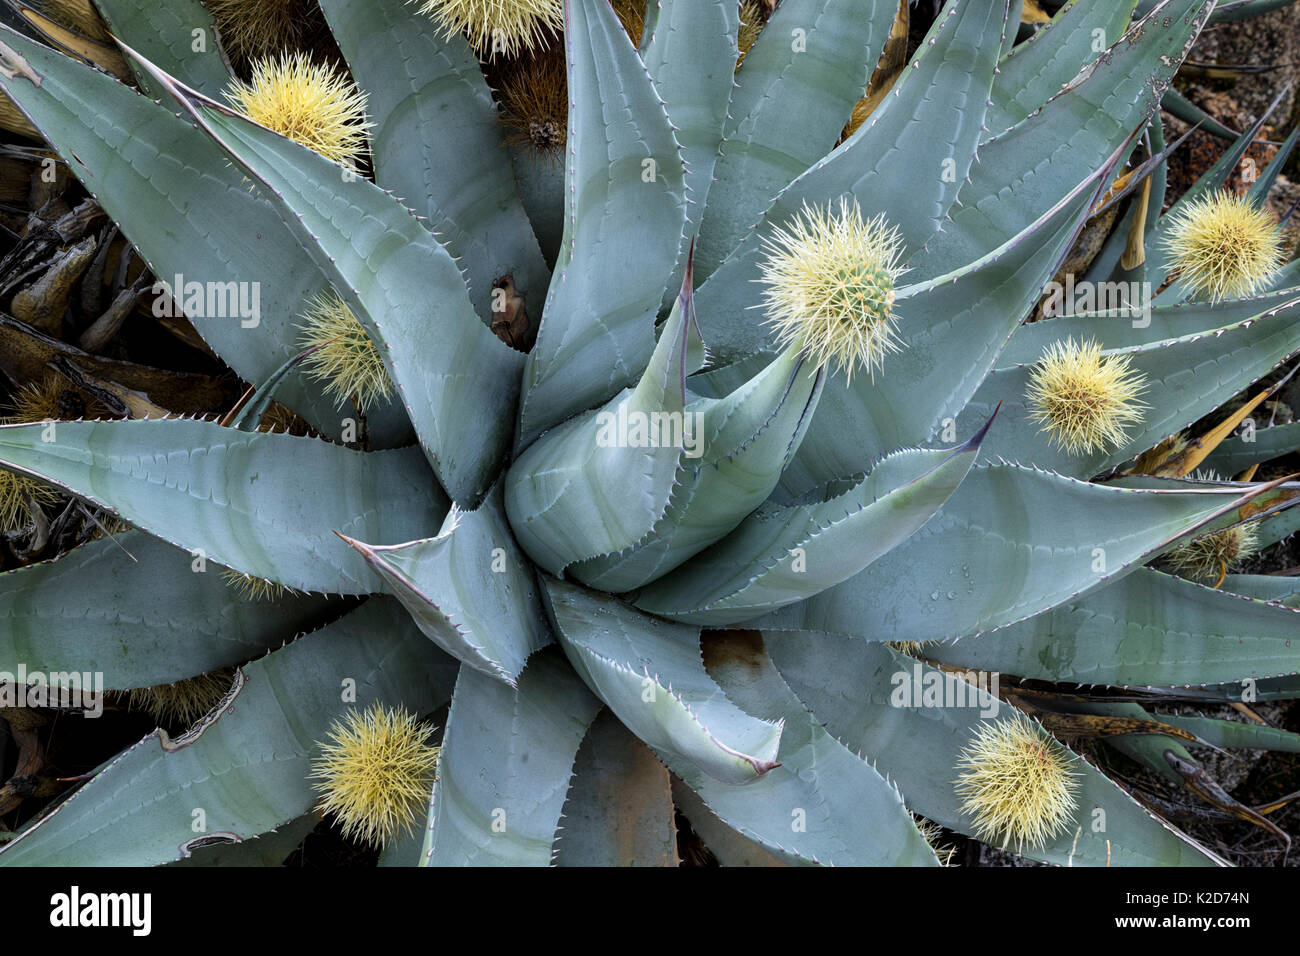 Desert agave (Agave deserti) has skewered a ball of spines shed by neighboring Cholla cactus (Cylindropuntia bigelovii) Anza-Borrego State Park, California, USA March - Stock Image